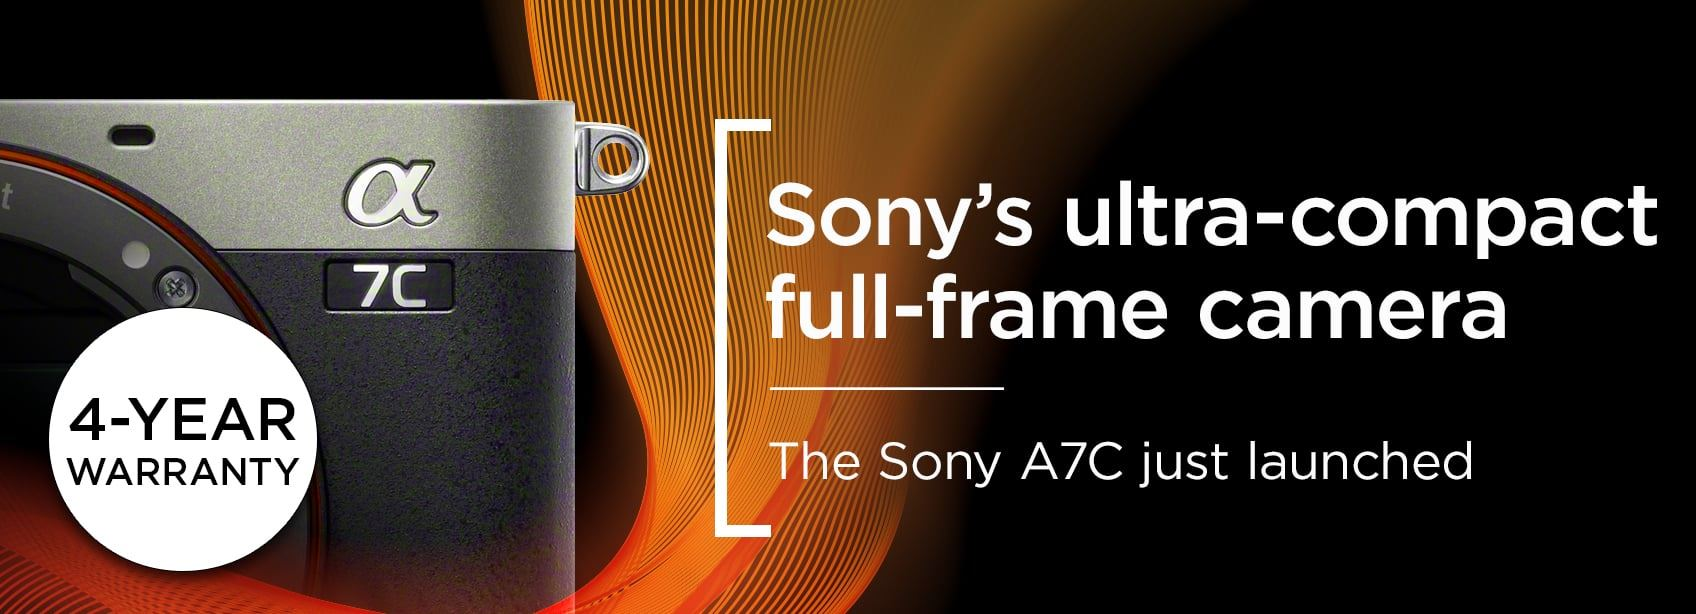 Sony's ultra-compact full-frame camera - the Sony A7C just launched